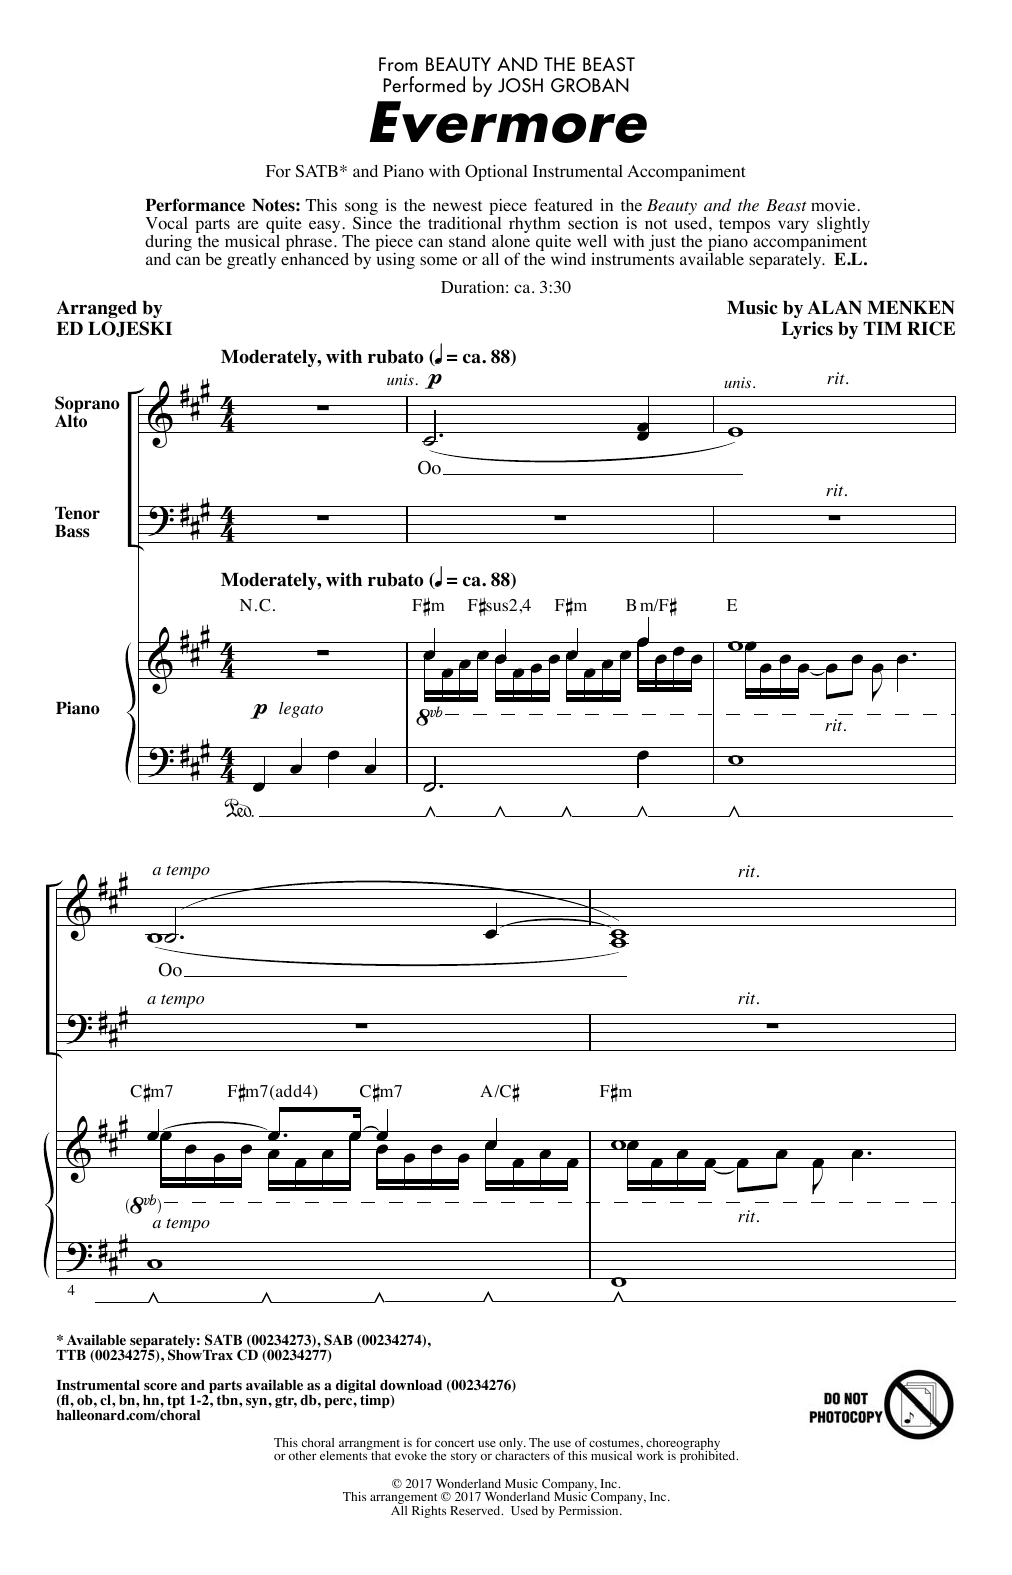 Evermore (SATB Choir)